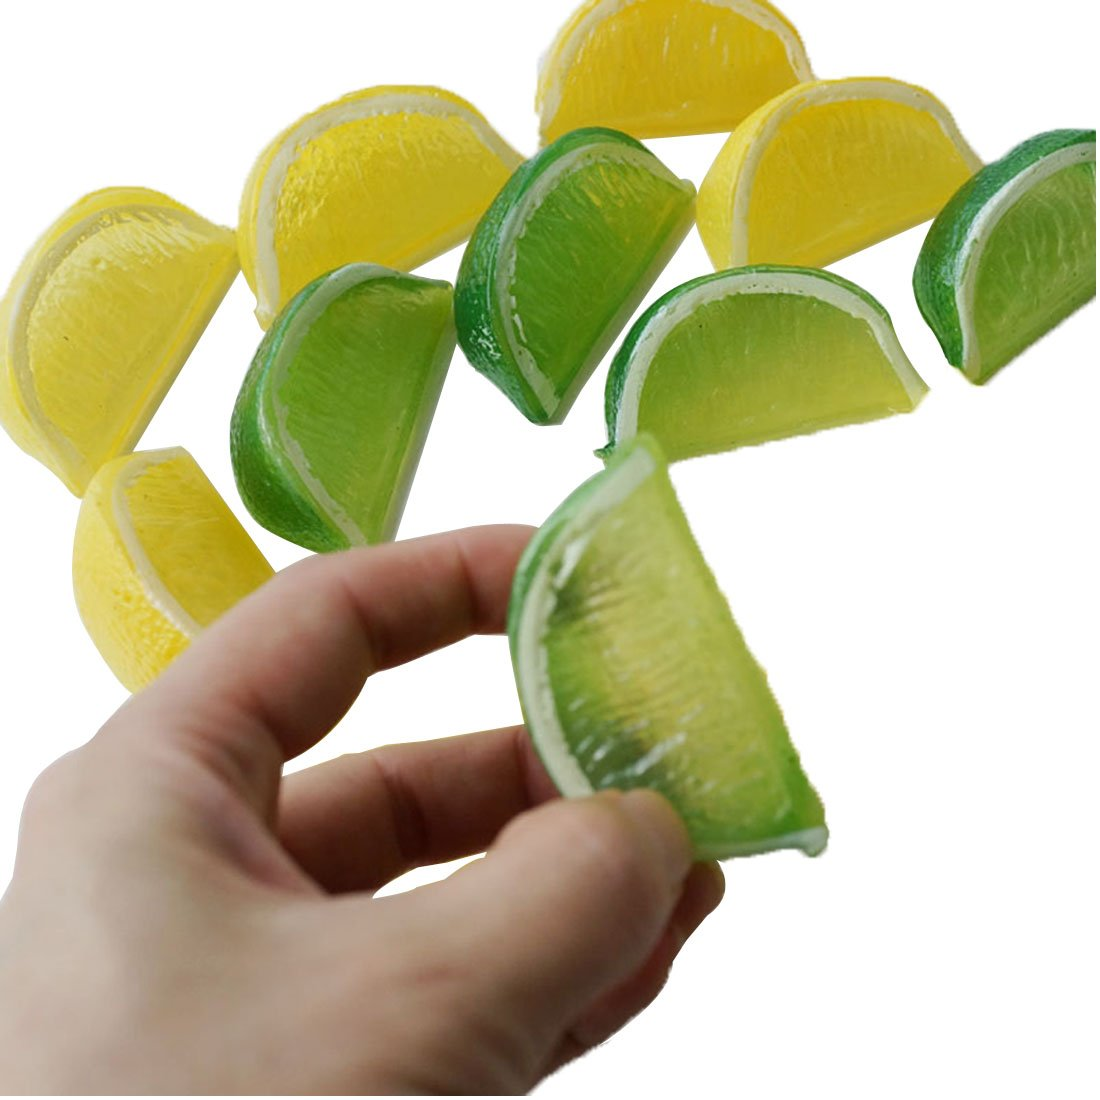 Lorigun 8pcs Fake Lemon Wedge Slice Garnish Artificial Fruit Lemon Block Faux Food House Bar Decoration Cocktail Party Arrangement(Green Yellow,Each Color 4Pcs)